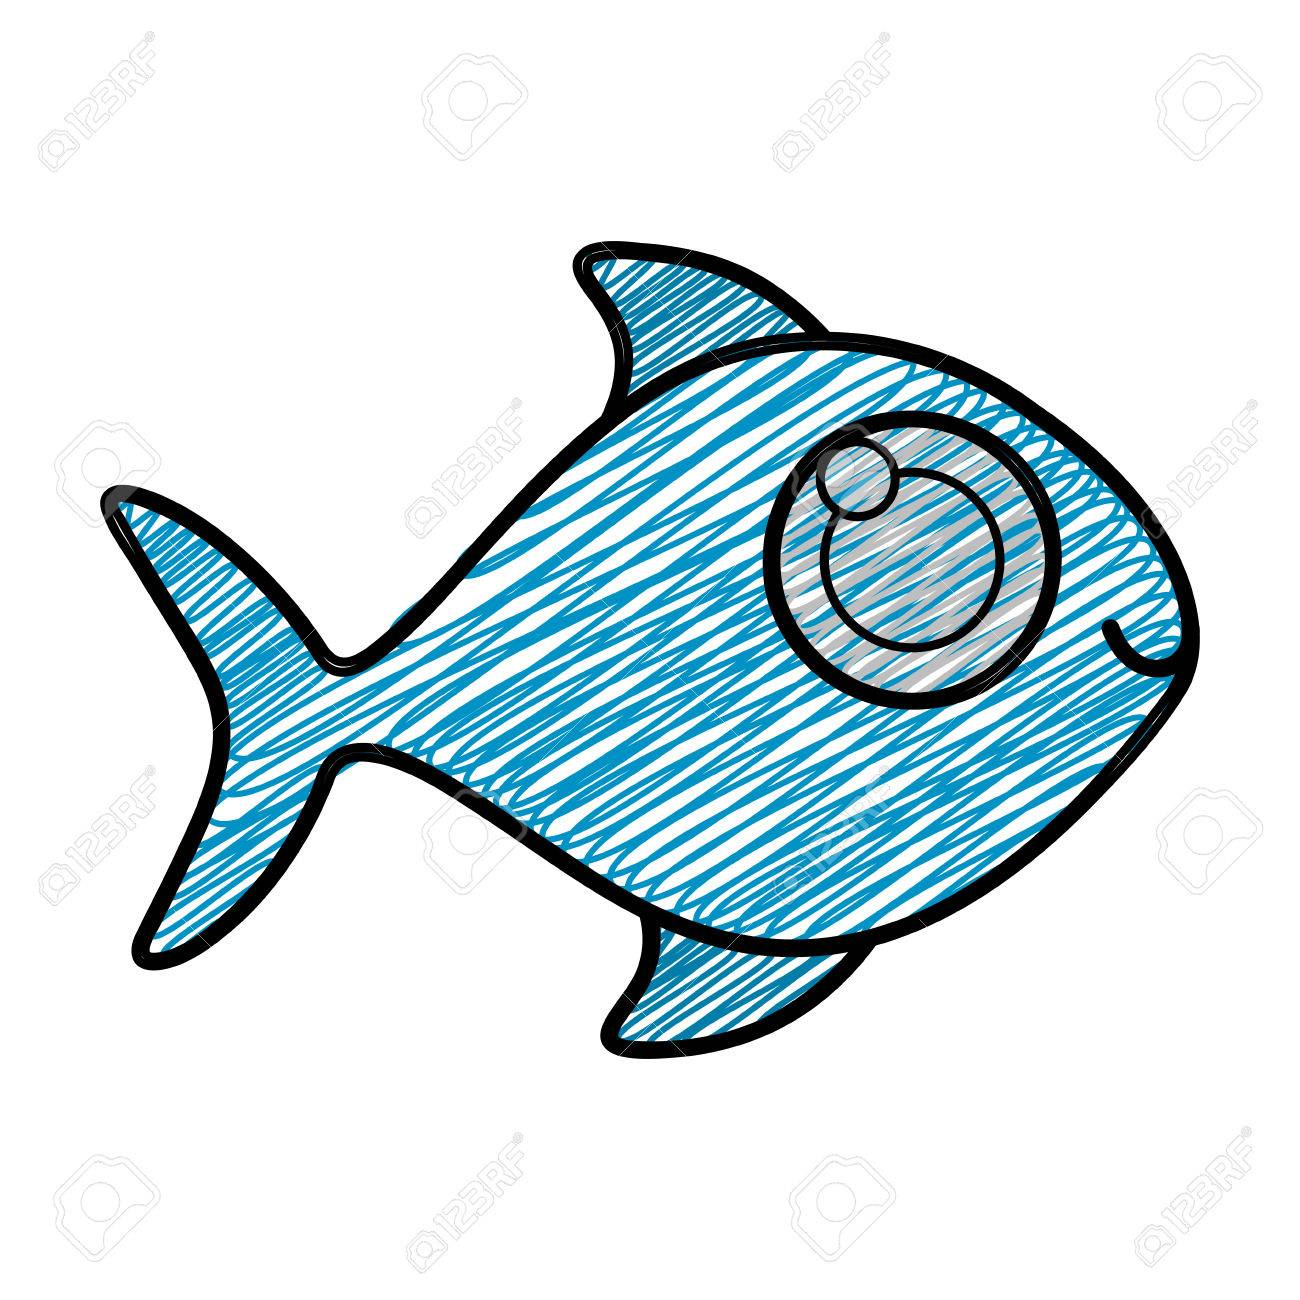 1300x1300 Color Pencil Drawing Of Fish Without Scales Vector Illustration